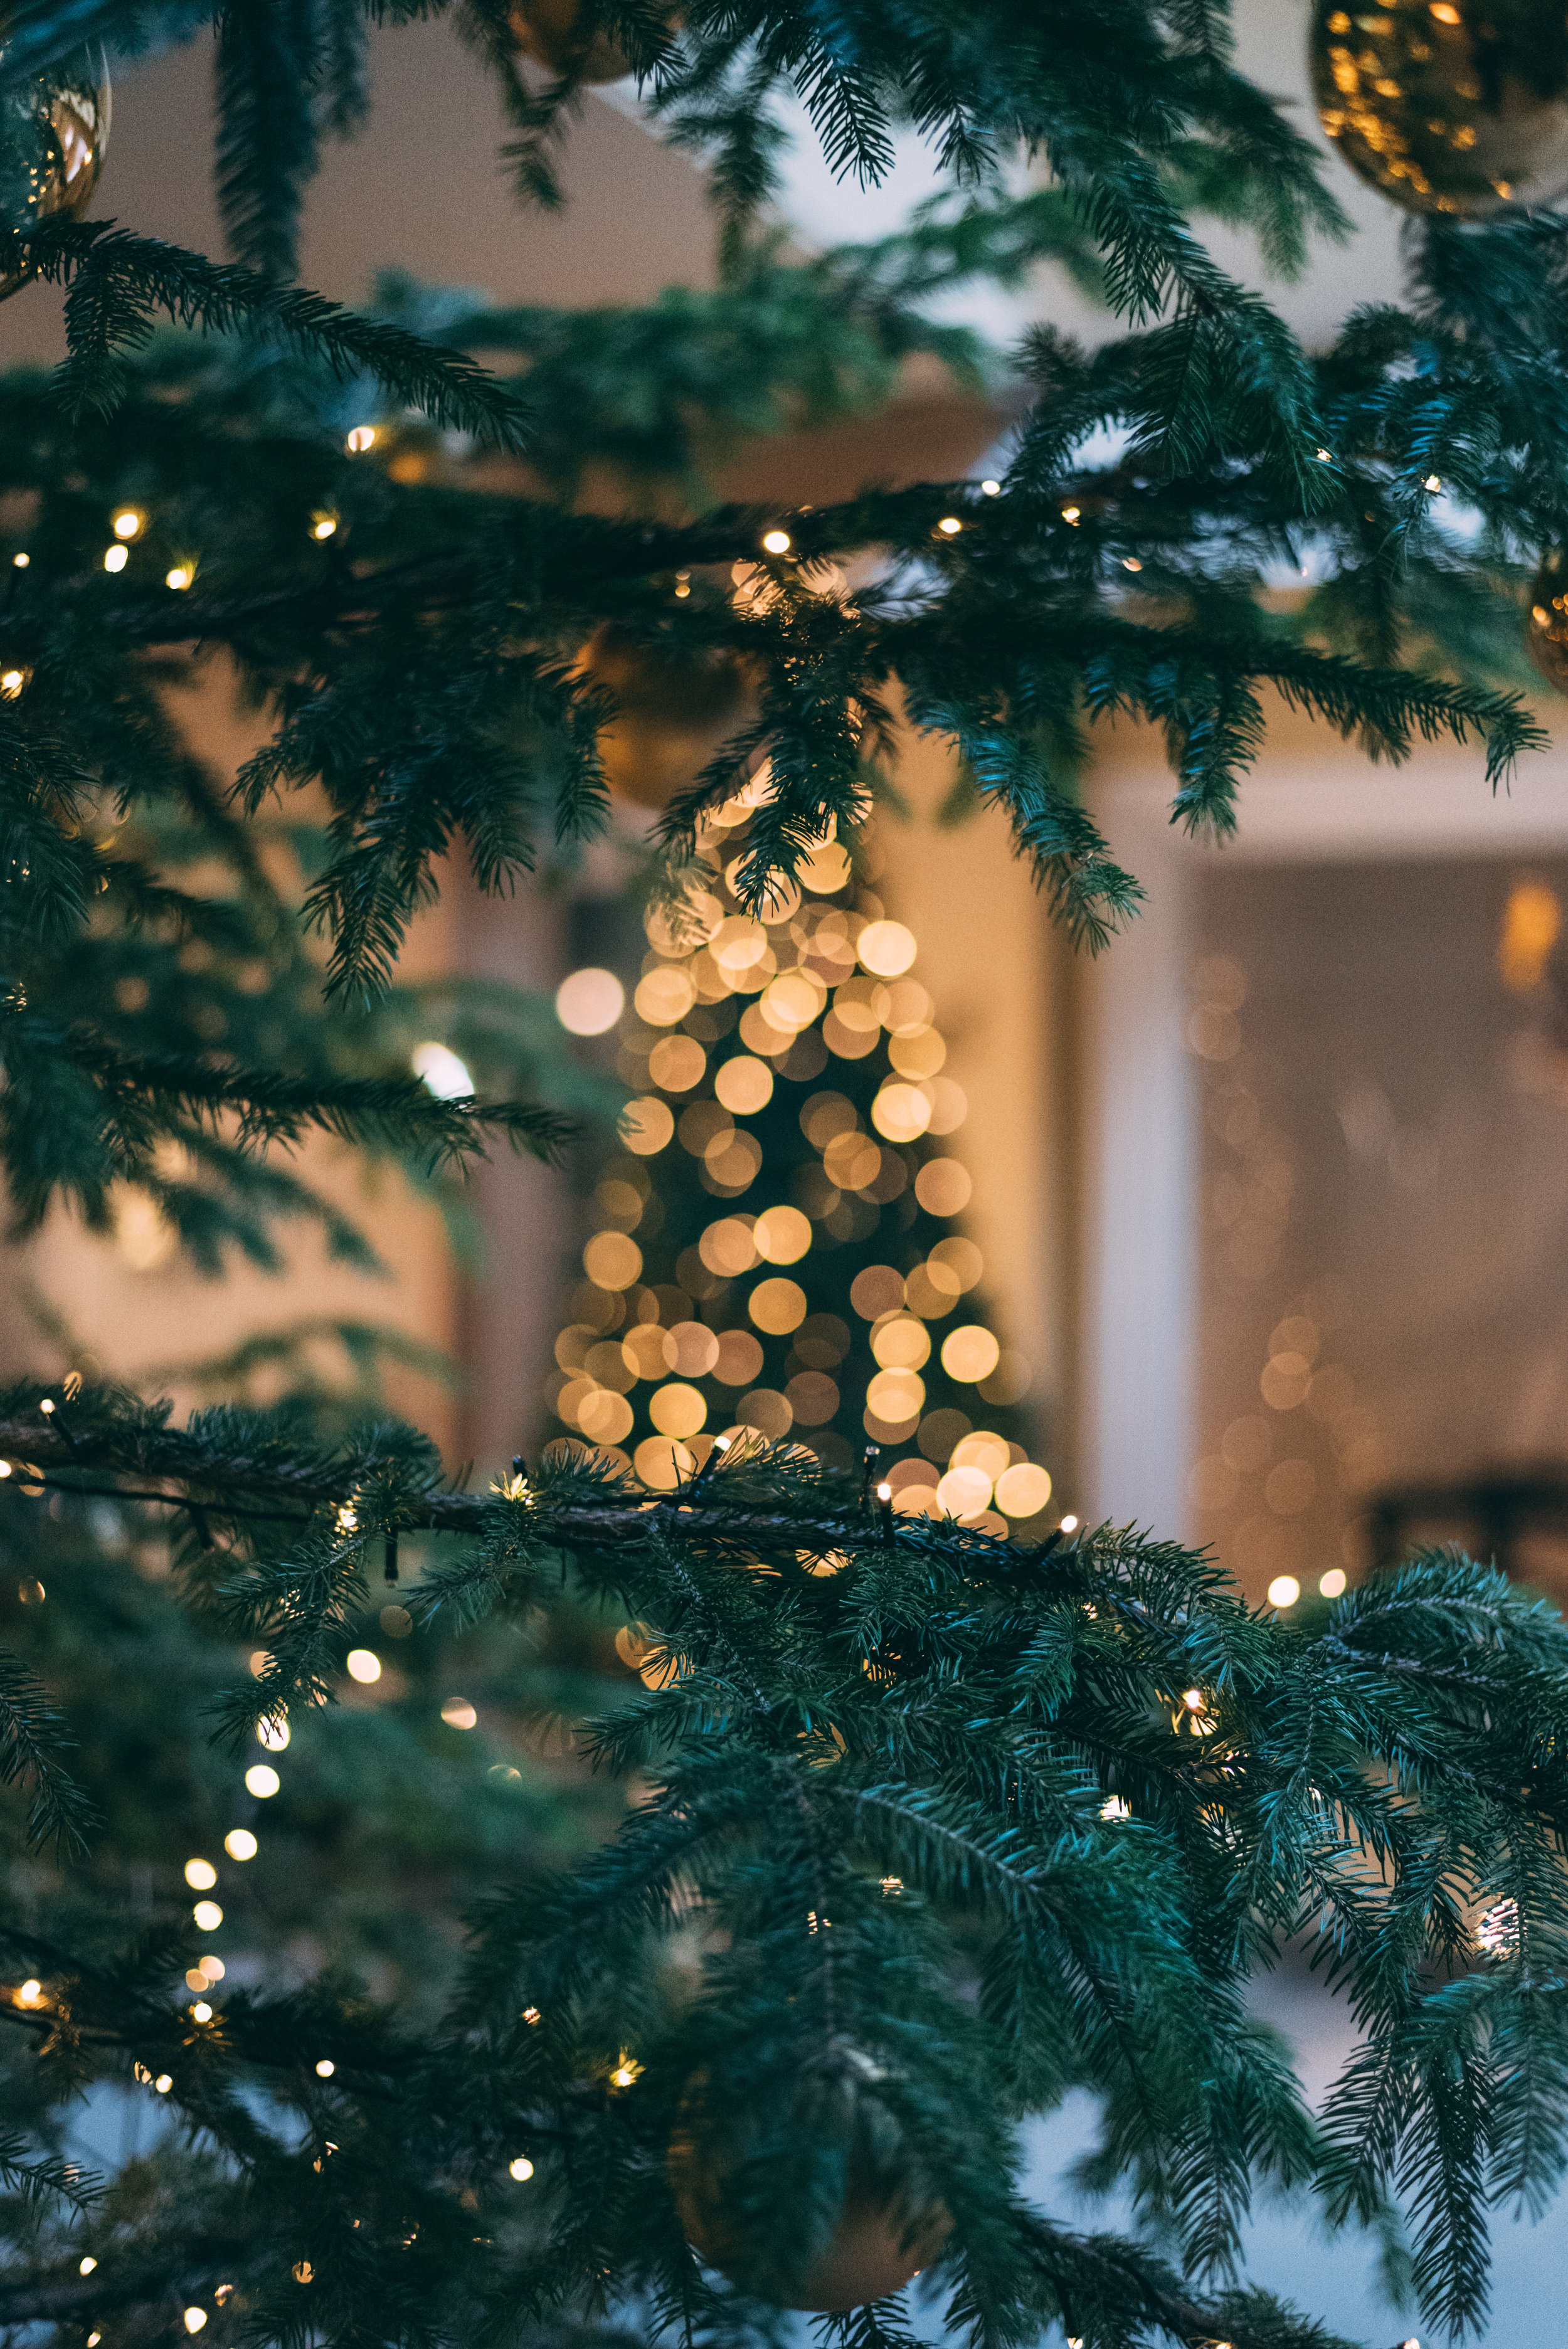 Whether you're planning a perfectchristmas dinner after the King's Theatre pantomime, or looking to treat your colleagues to a delicious festive party, we've got you covered with - CHRISTMAS AT HENRICK'S